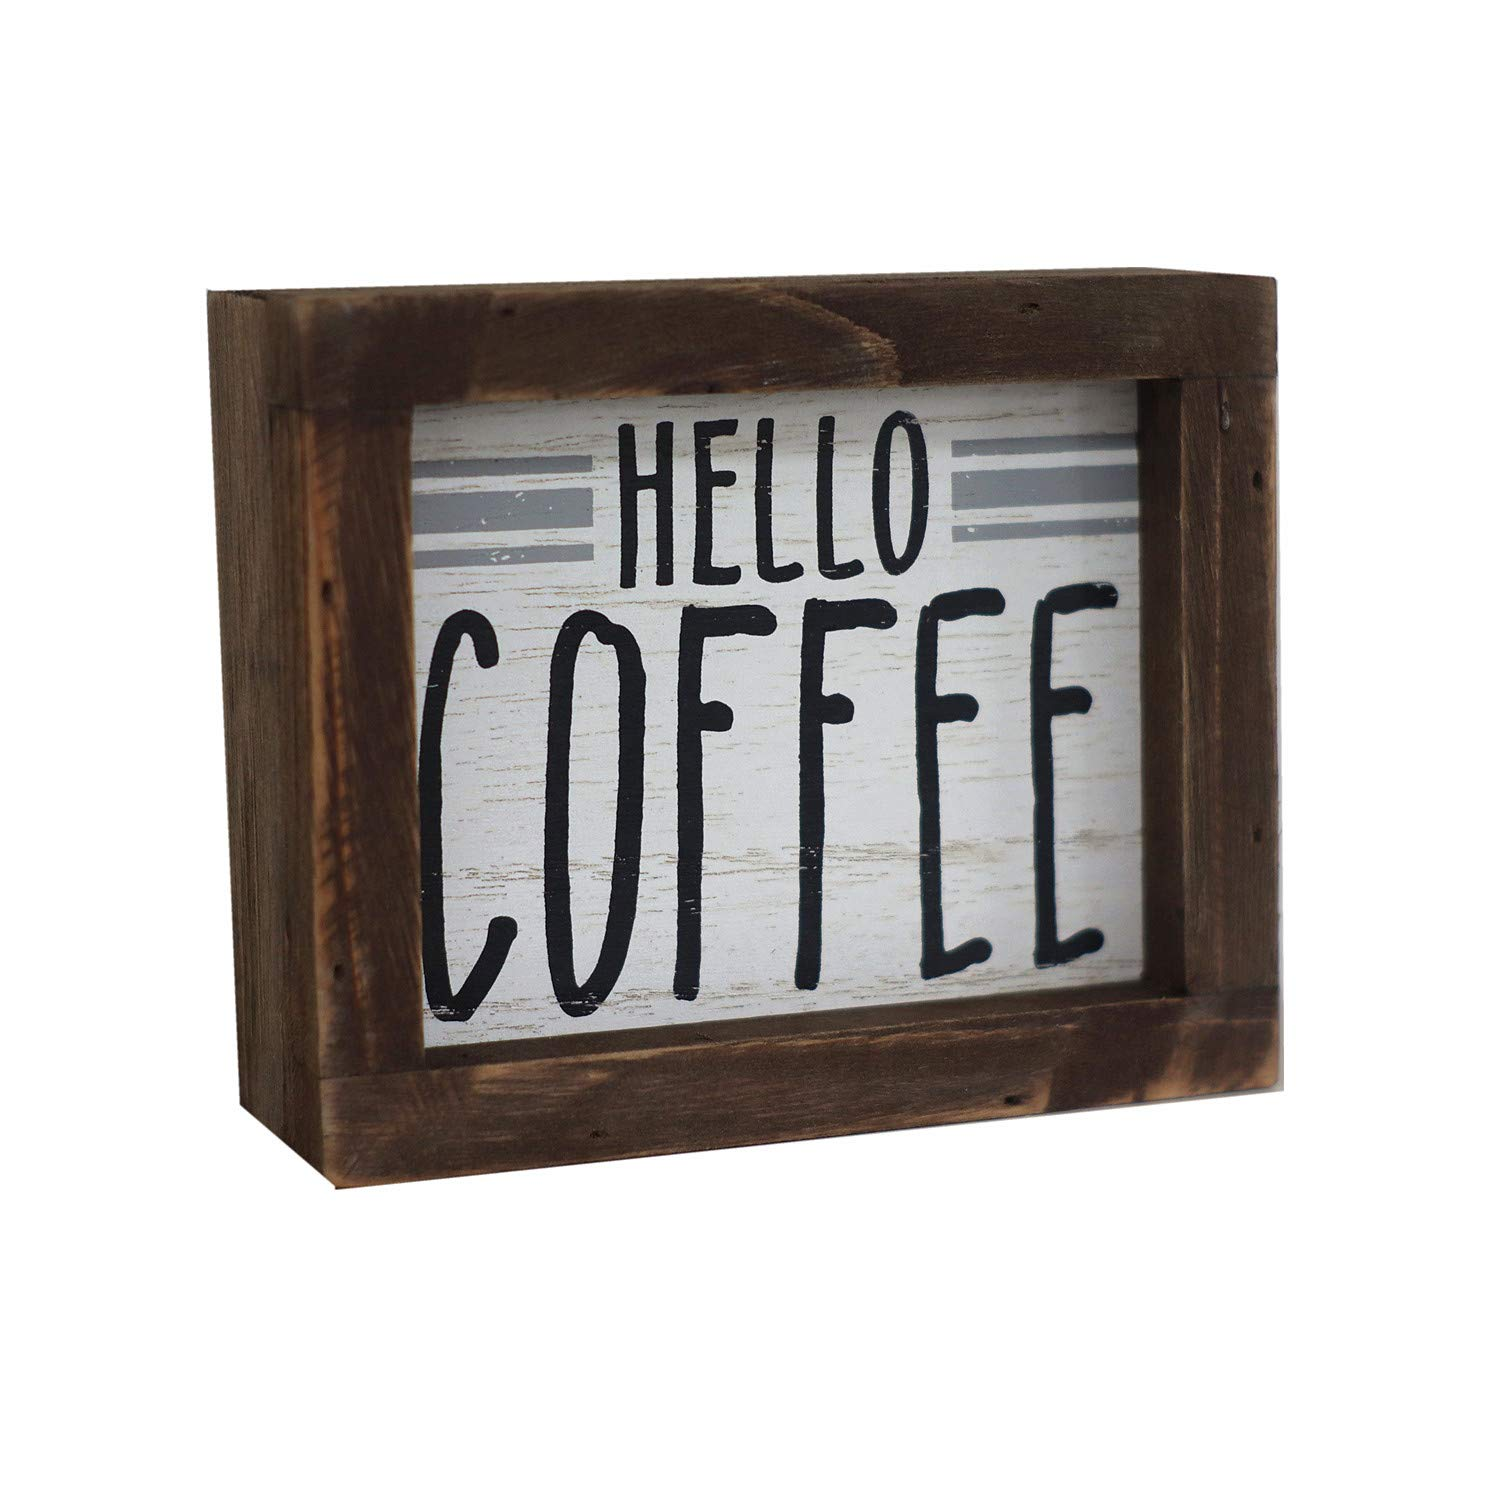 Parisloft Hello Coffee Barn Wood Small Box Sign for Kitchen Decor Coffee Bar, Rustic Wooden Coffee Sign Plaque Freestanding Farmhouse Kitchen Decor Wood Home Decor 5.8''x4.8''